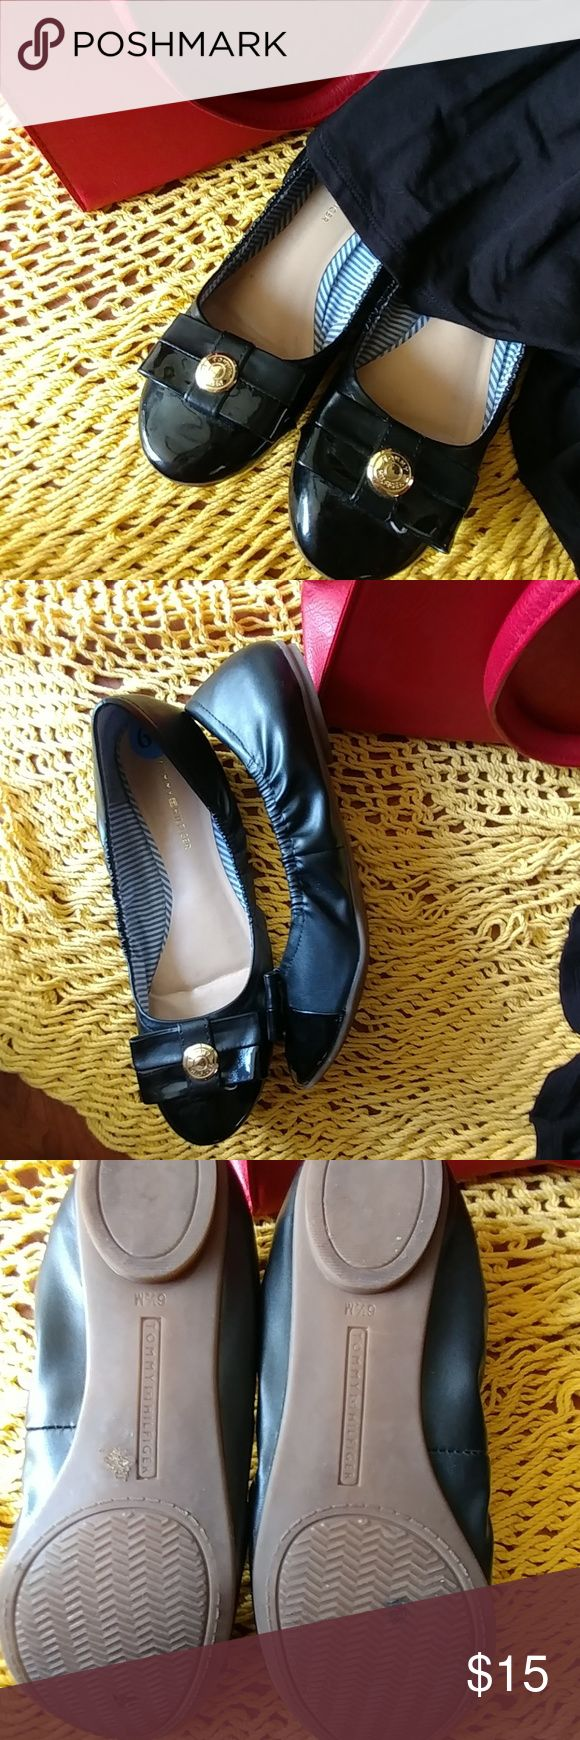 Black flats, loafers Tomy Hilfiger black and pattent leather flats, true to size. A thousand possibilities. Tommy Hilfiger Shoes Flats & Loafers